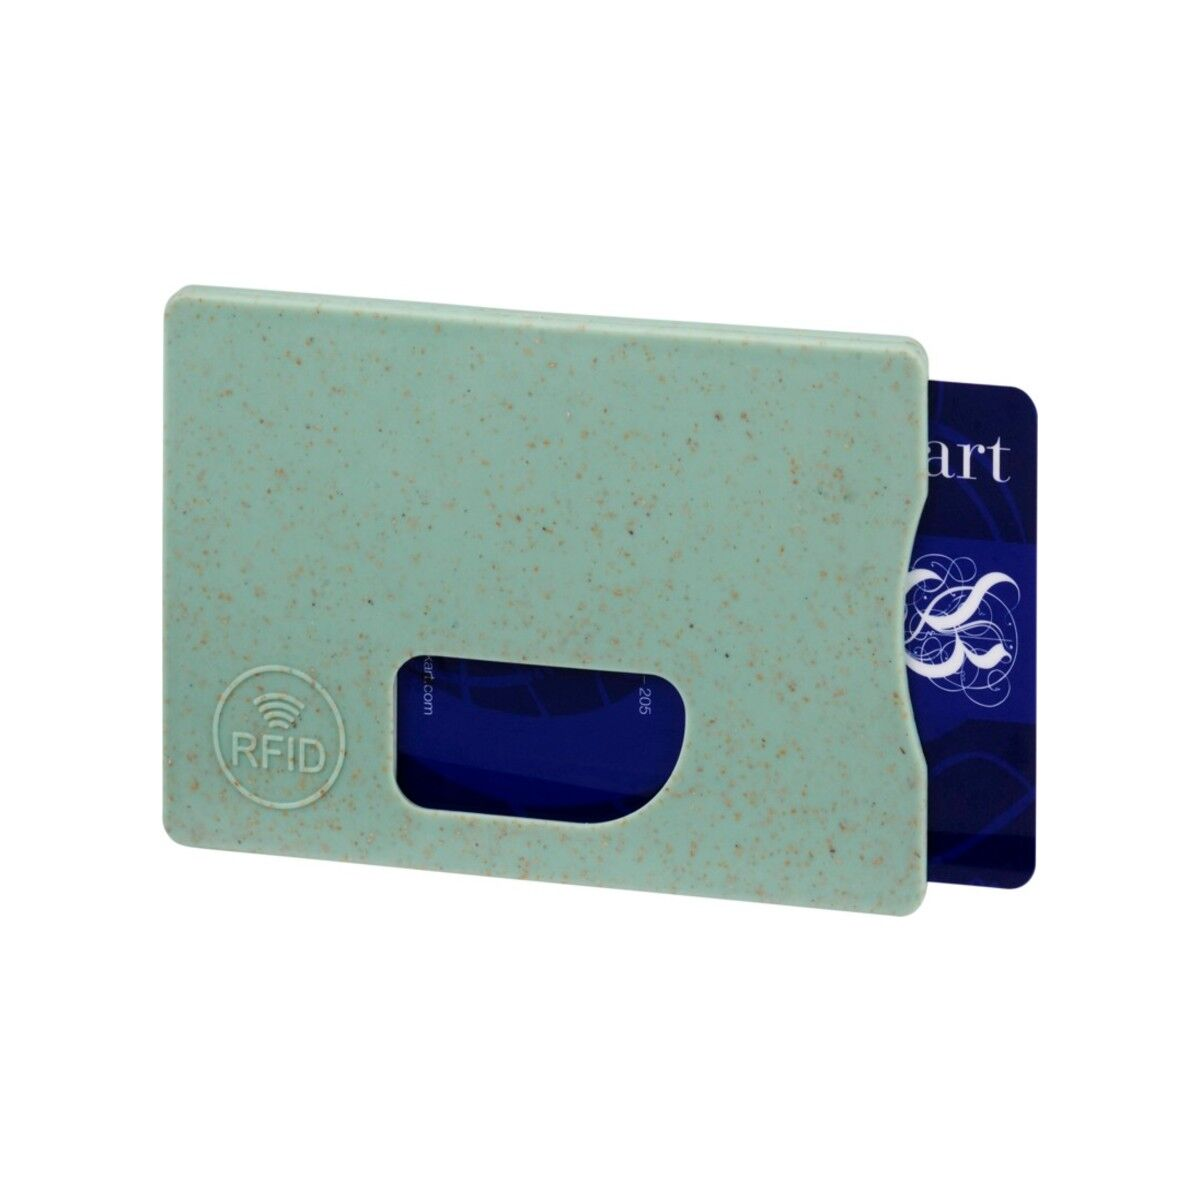 RFID Card Holder in Mint